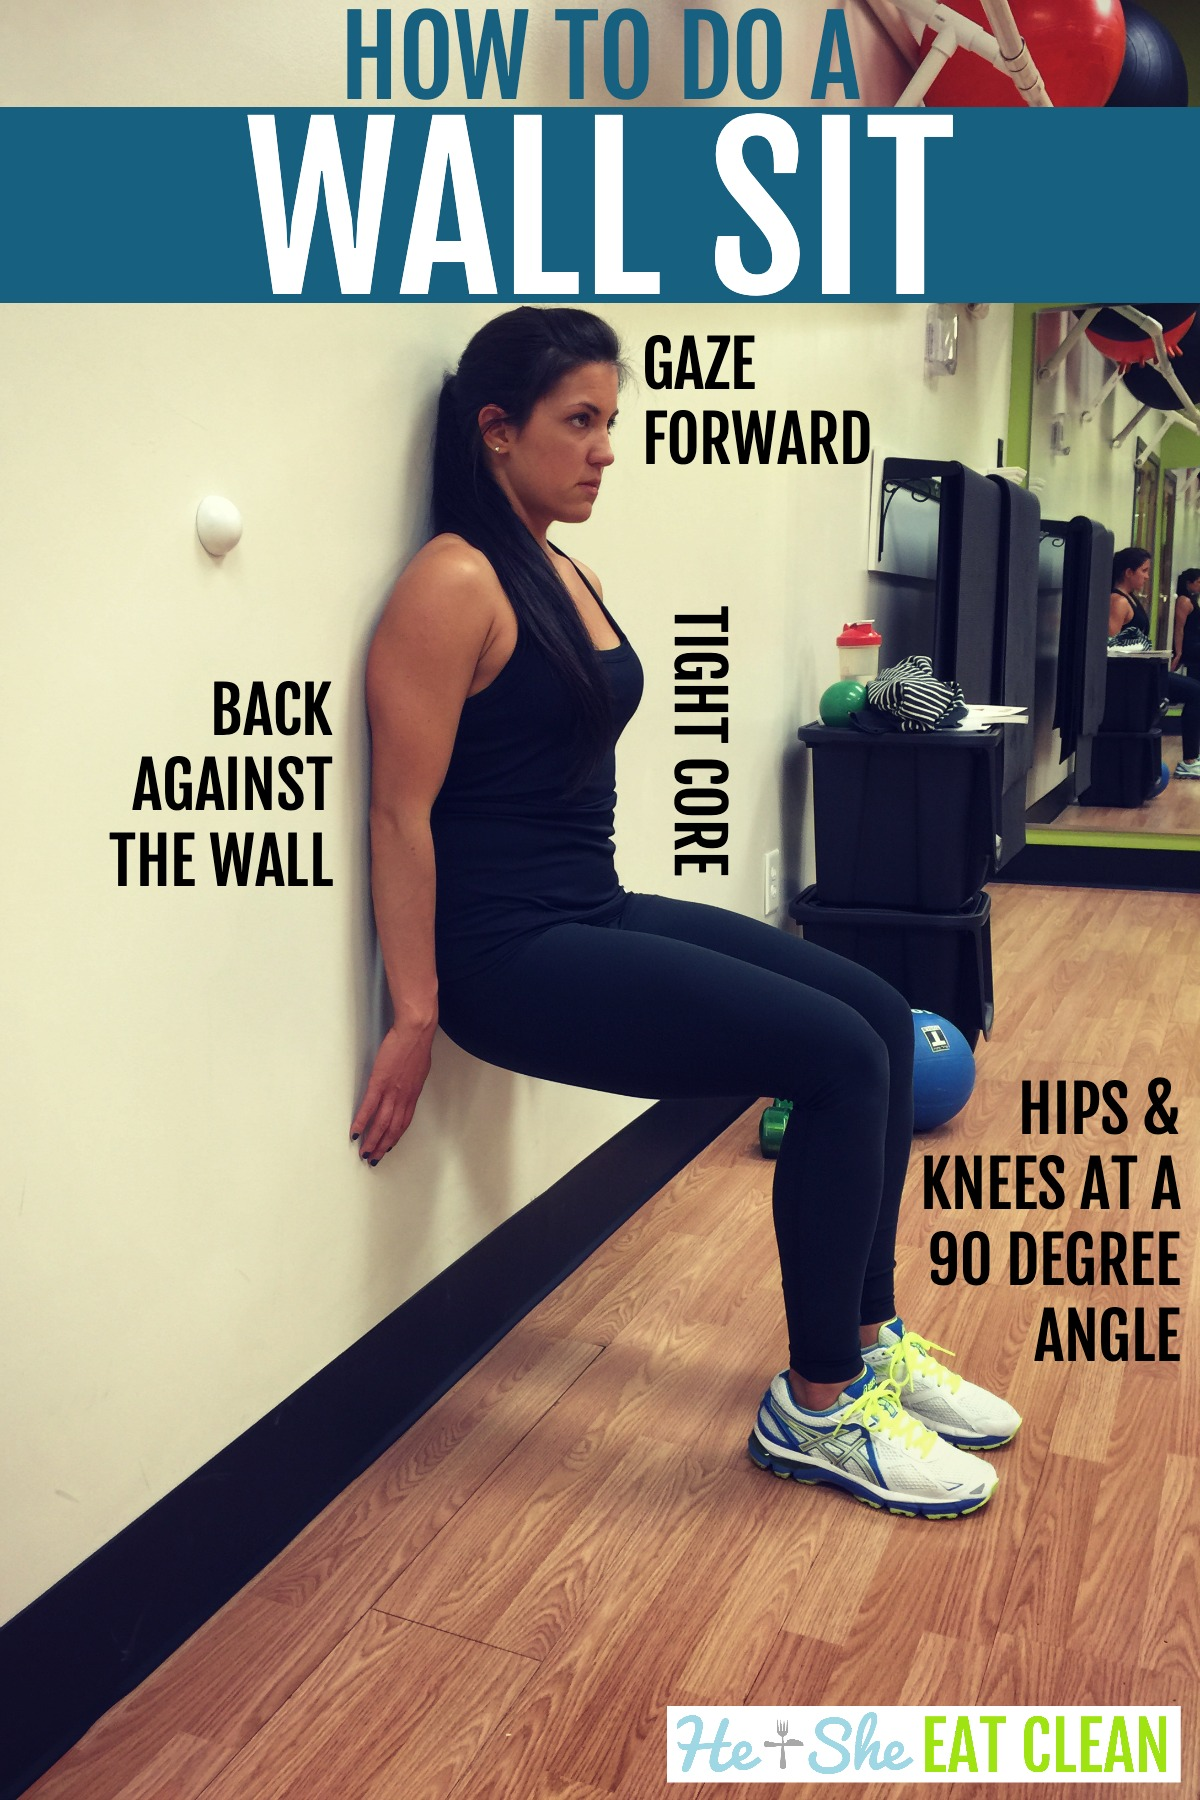 female doing a wall sit against the gym wall